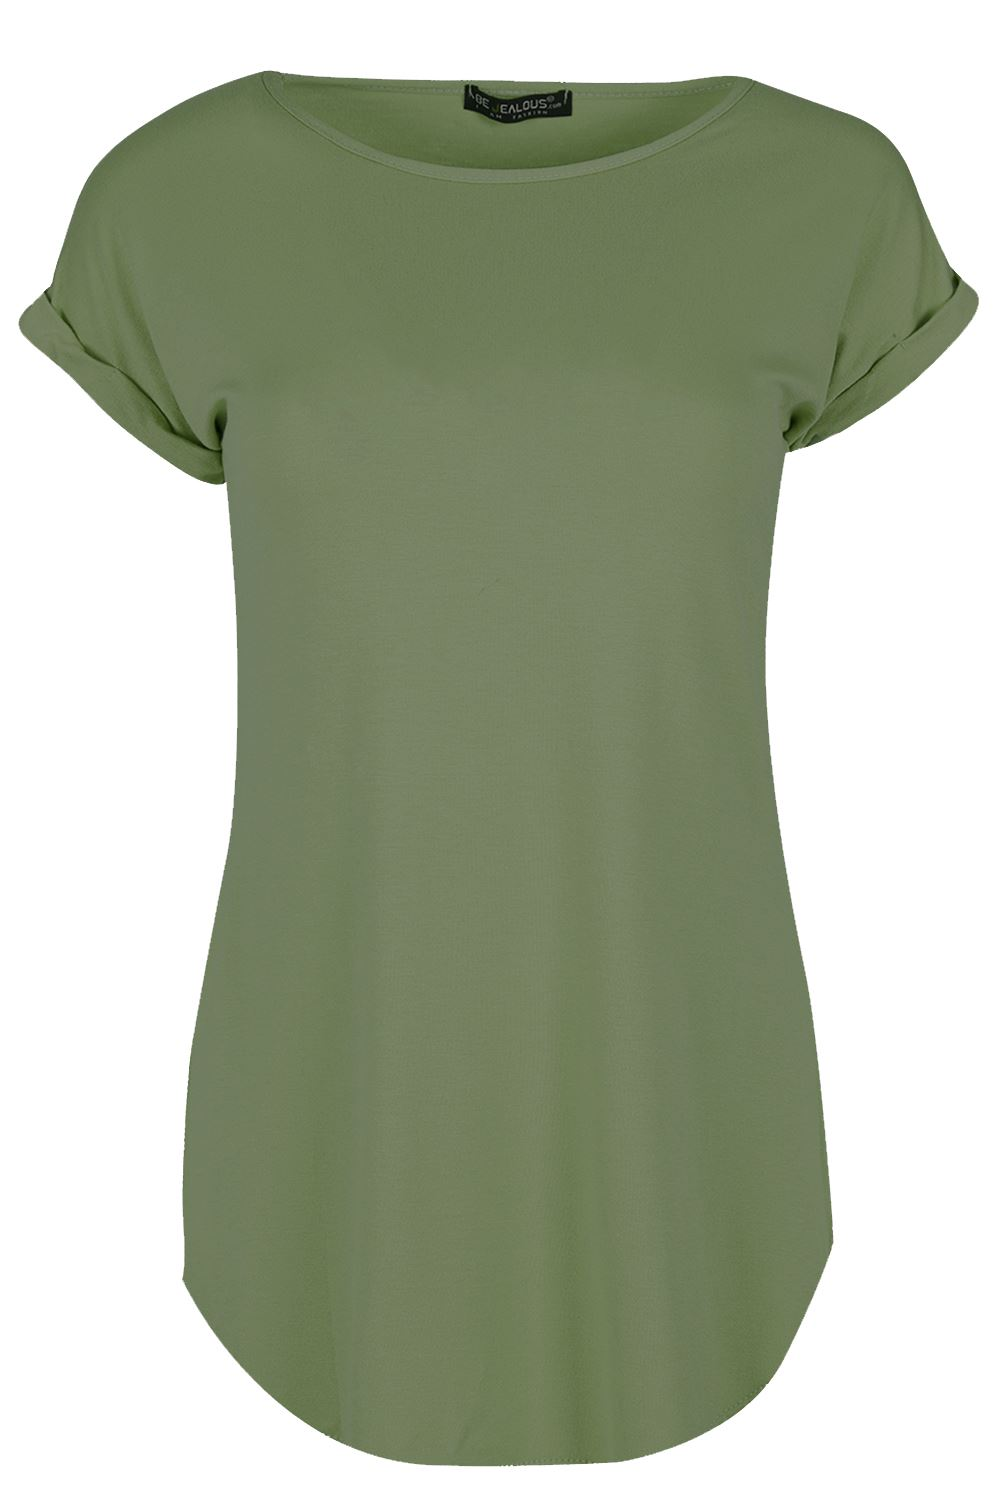 Womens curved hem jersey plain top ladies round neck turn for Round neck t shirts for ladies